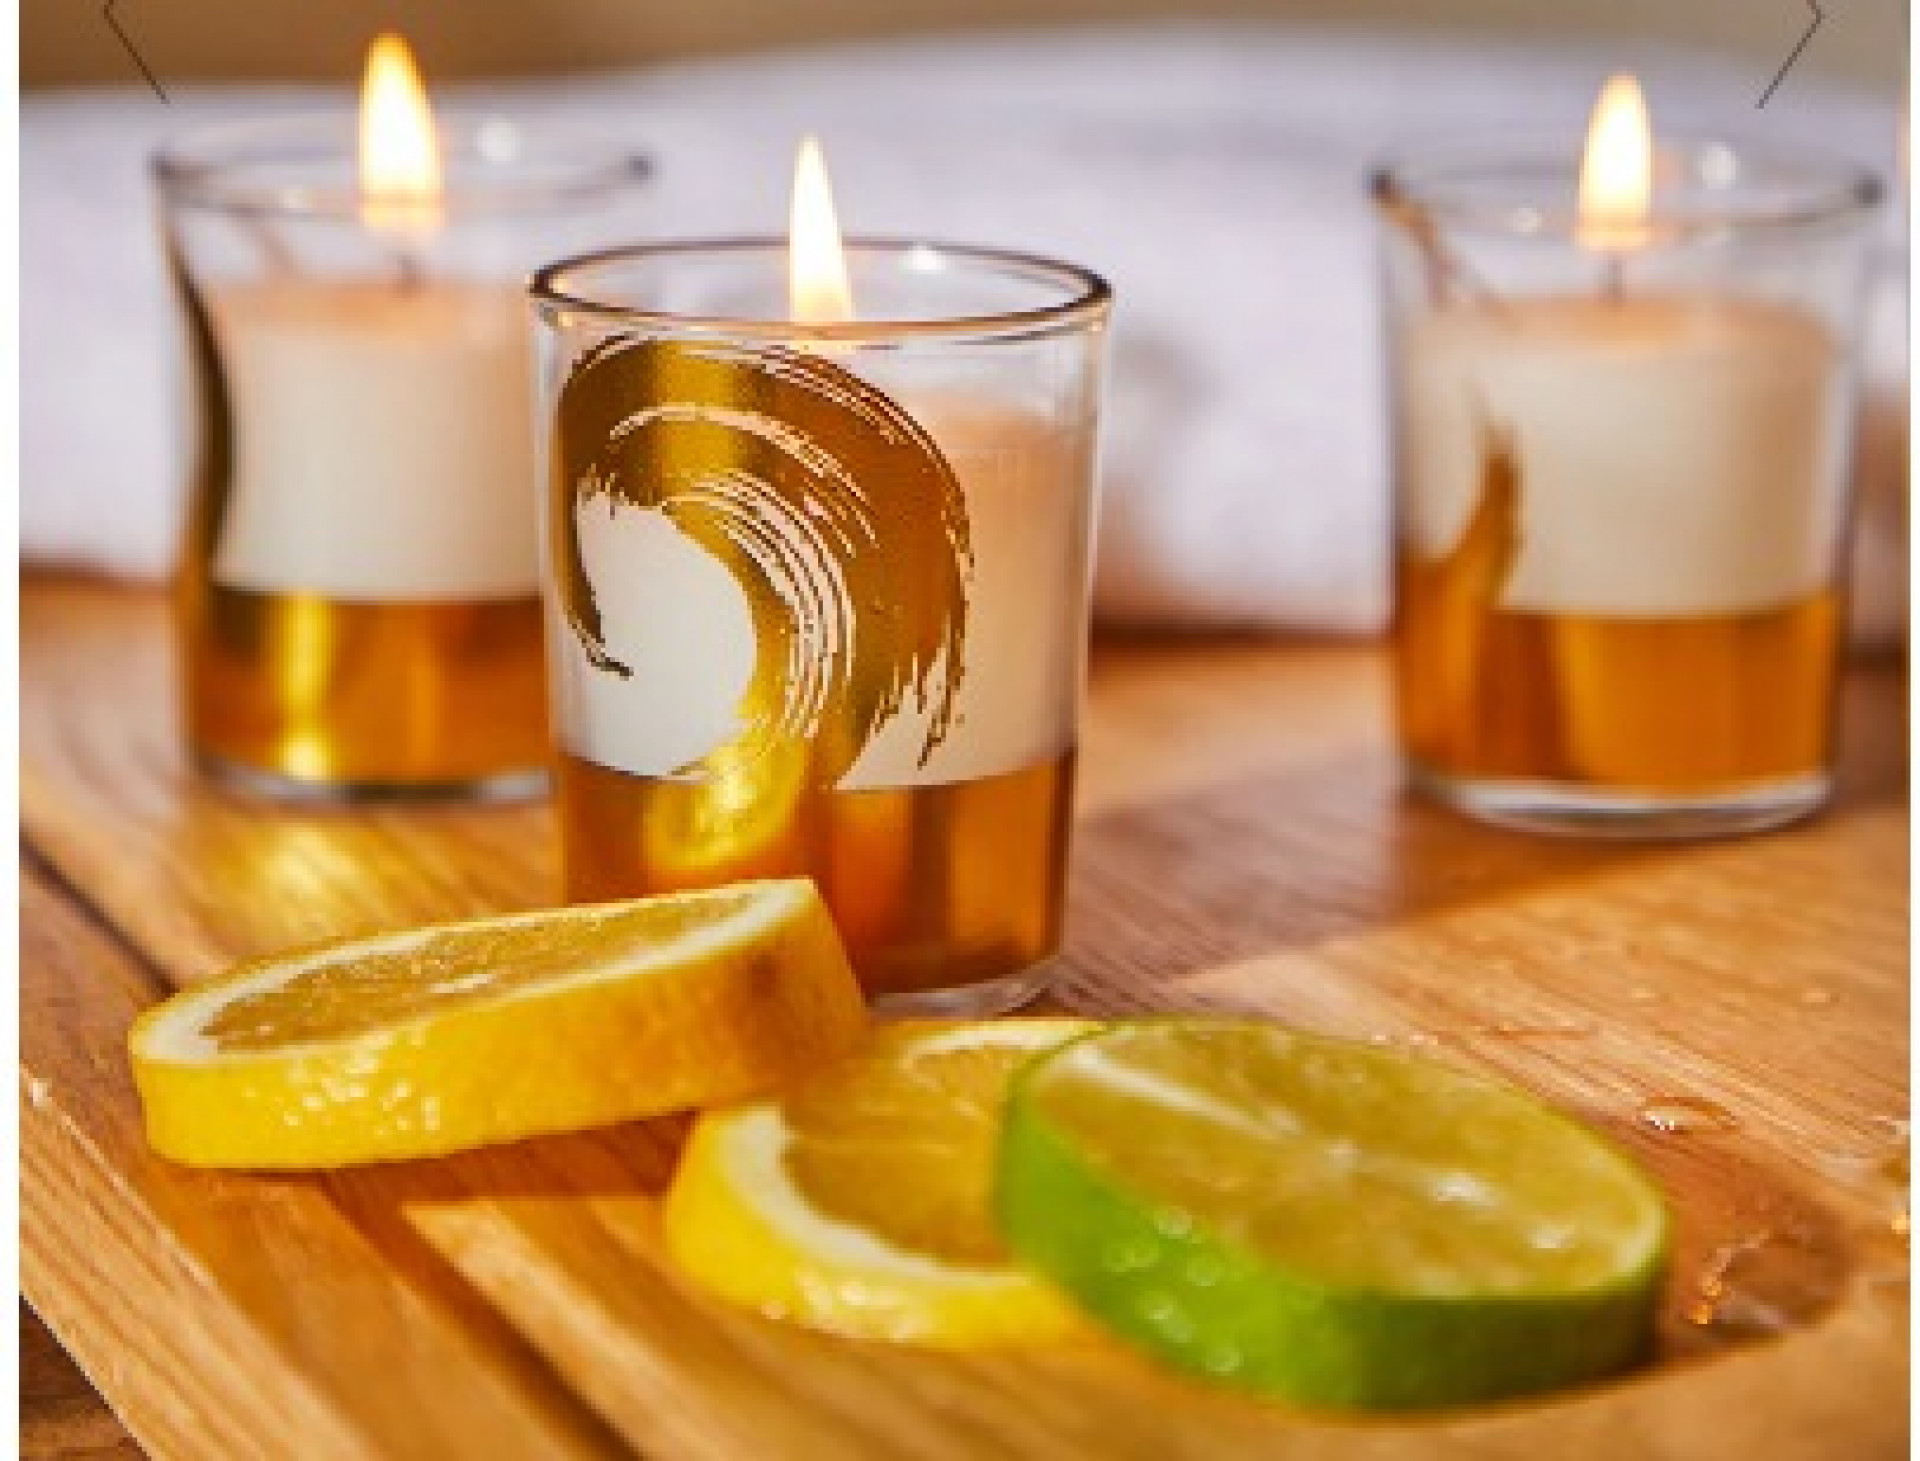 SPA DAY LAVENDER & VANILLA SCENTED SET OF 3 CANDLES